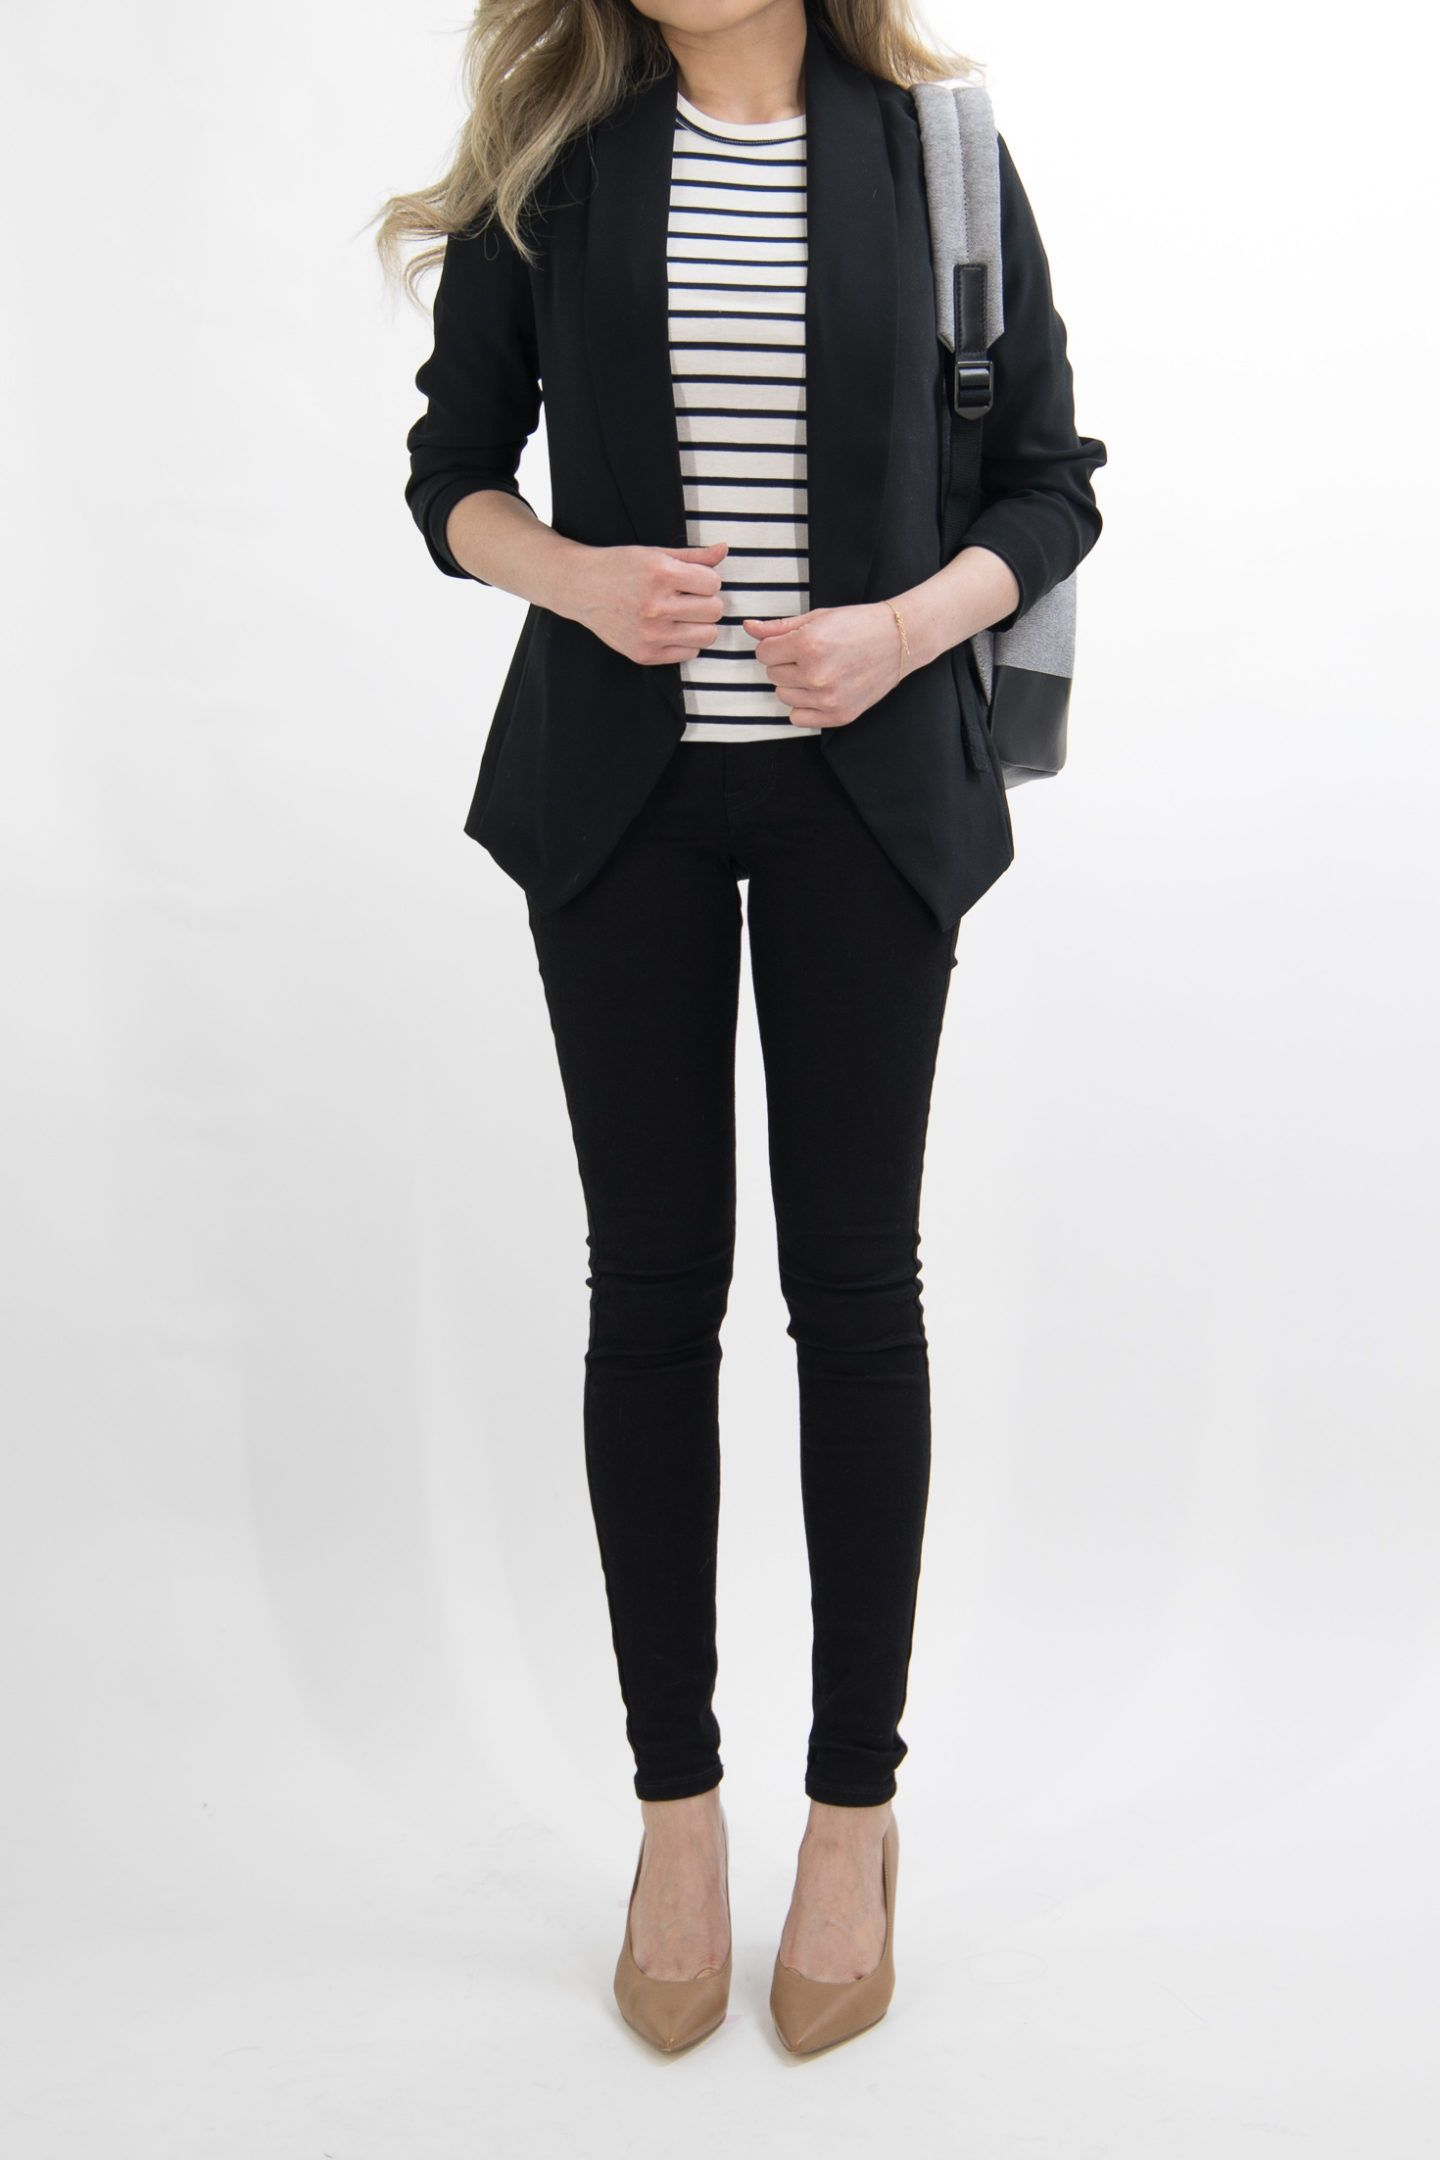 657075012b4 1 MONTH OF BUSINESS CASUAL OUTFIT IDEAS Pt. 2 - Miss Louie